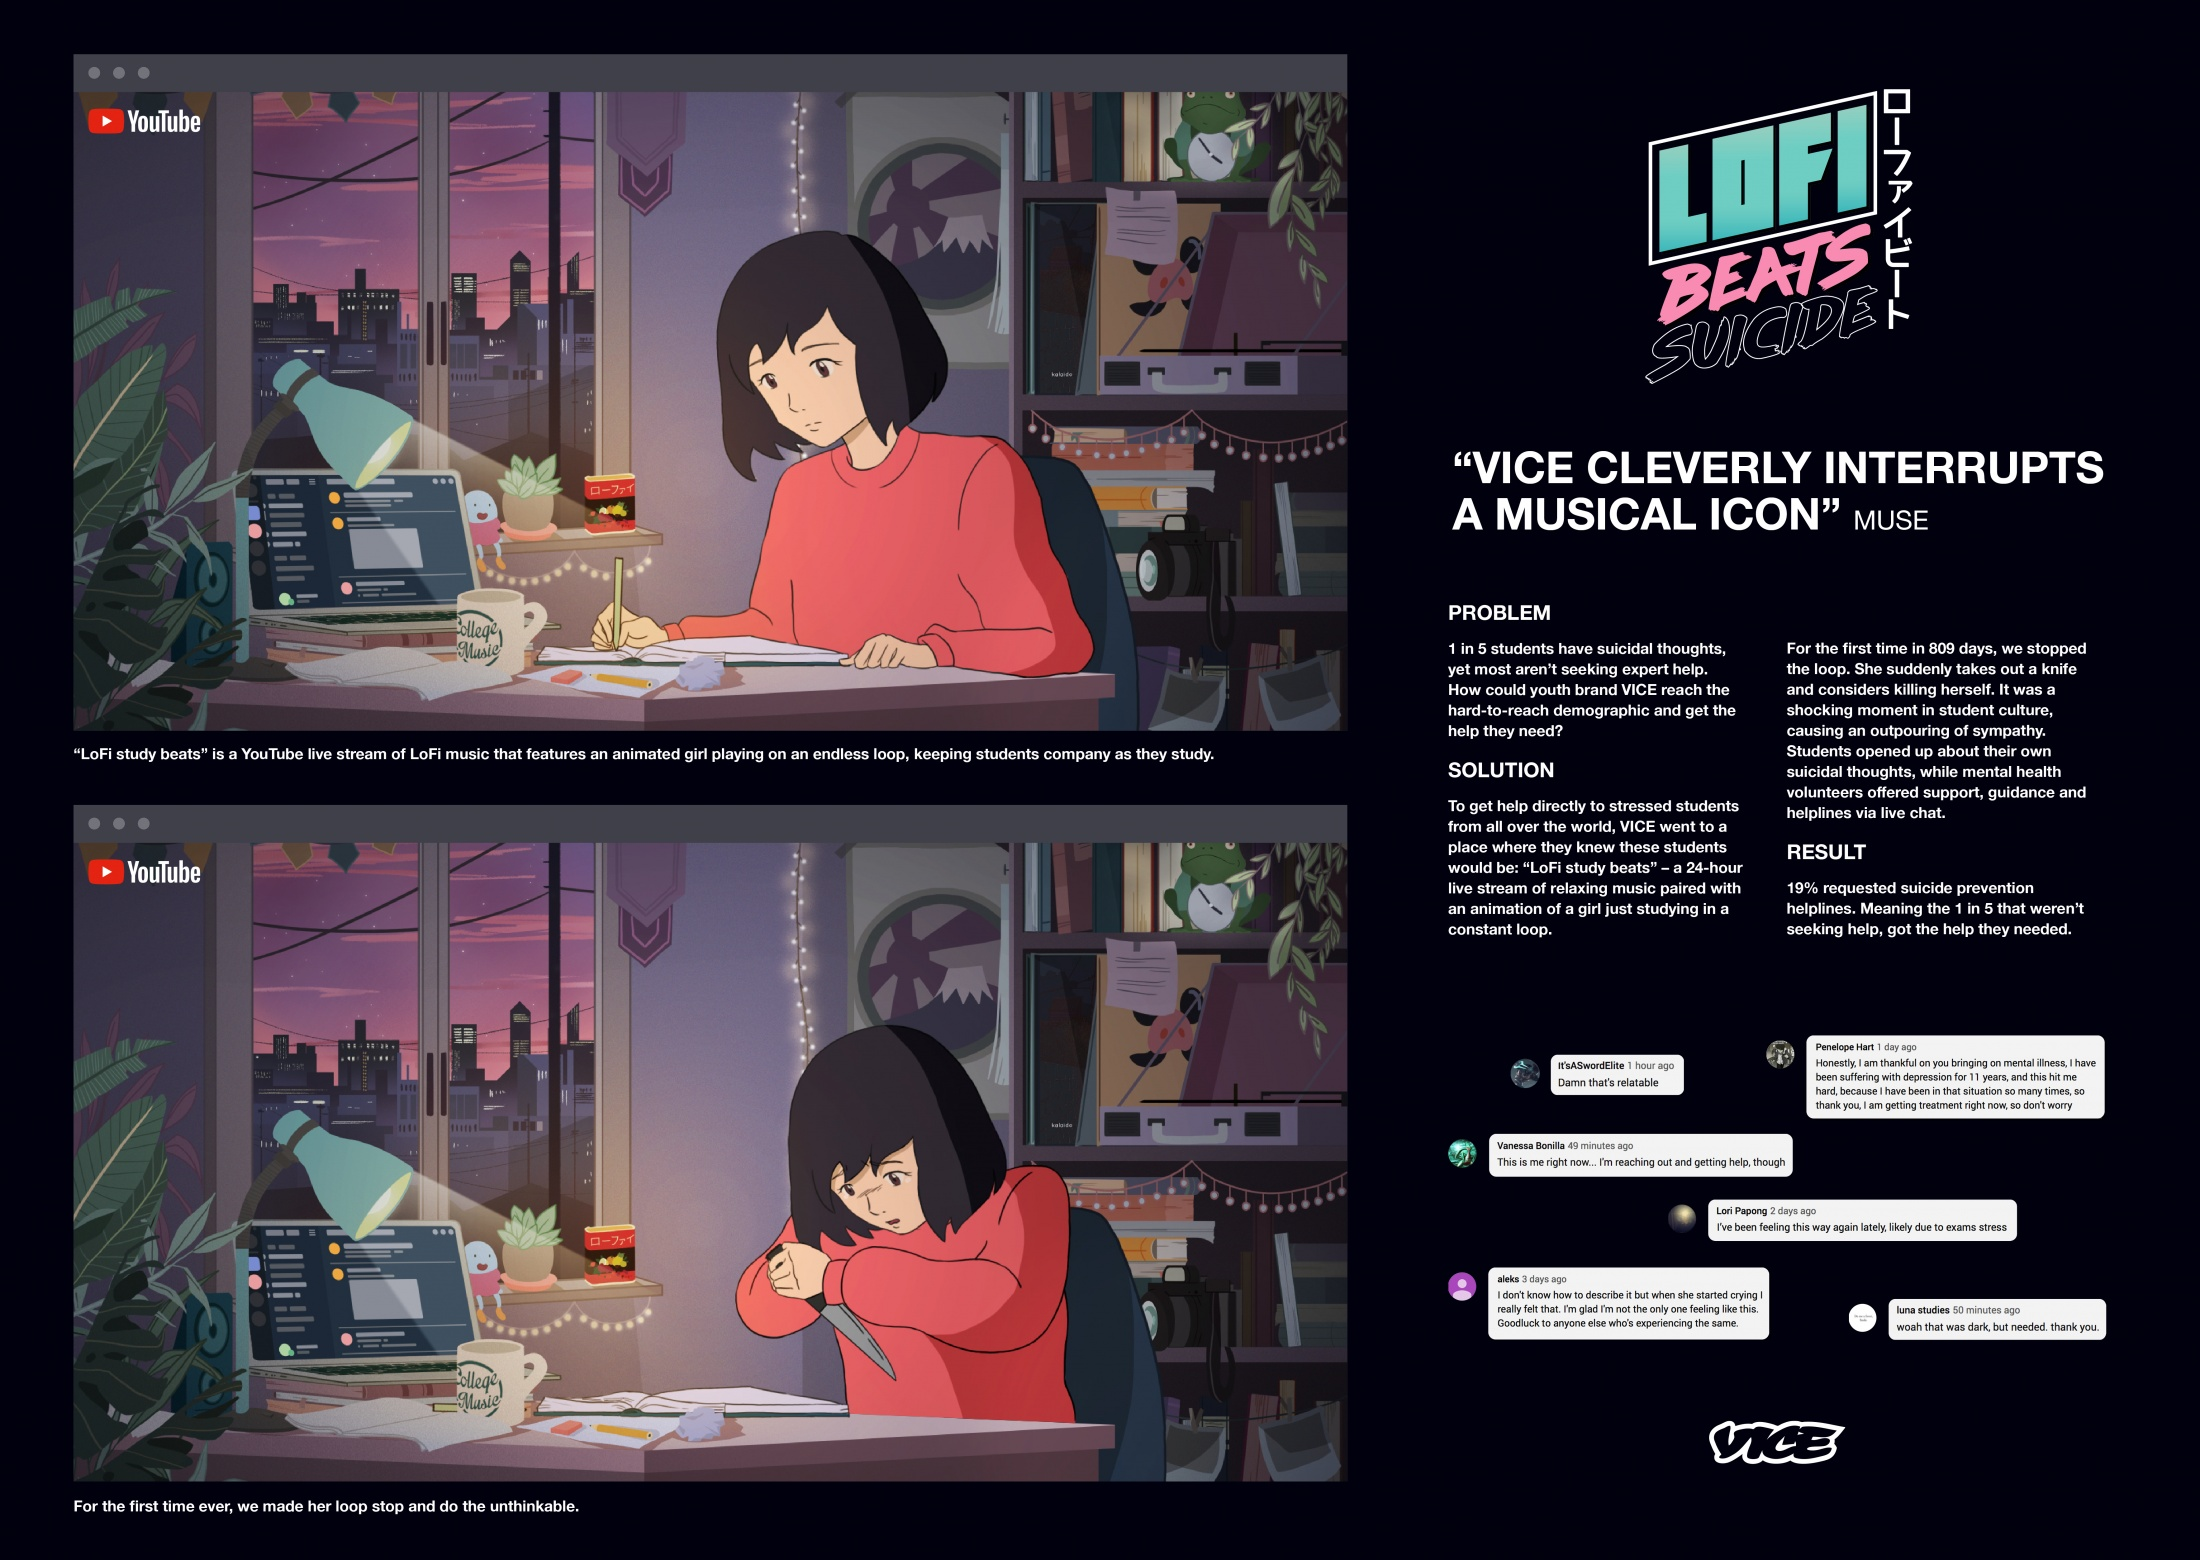 Image Media for LoFi Beats Suicide